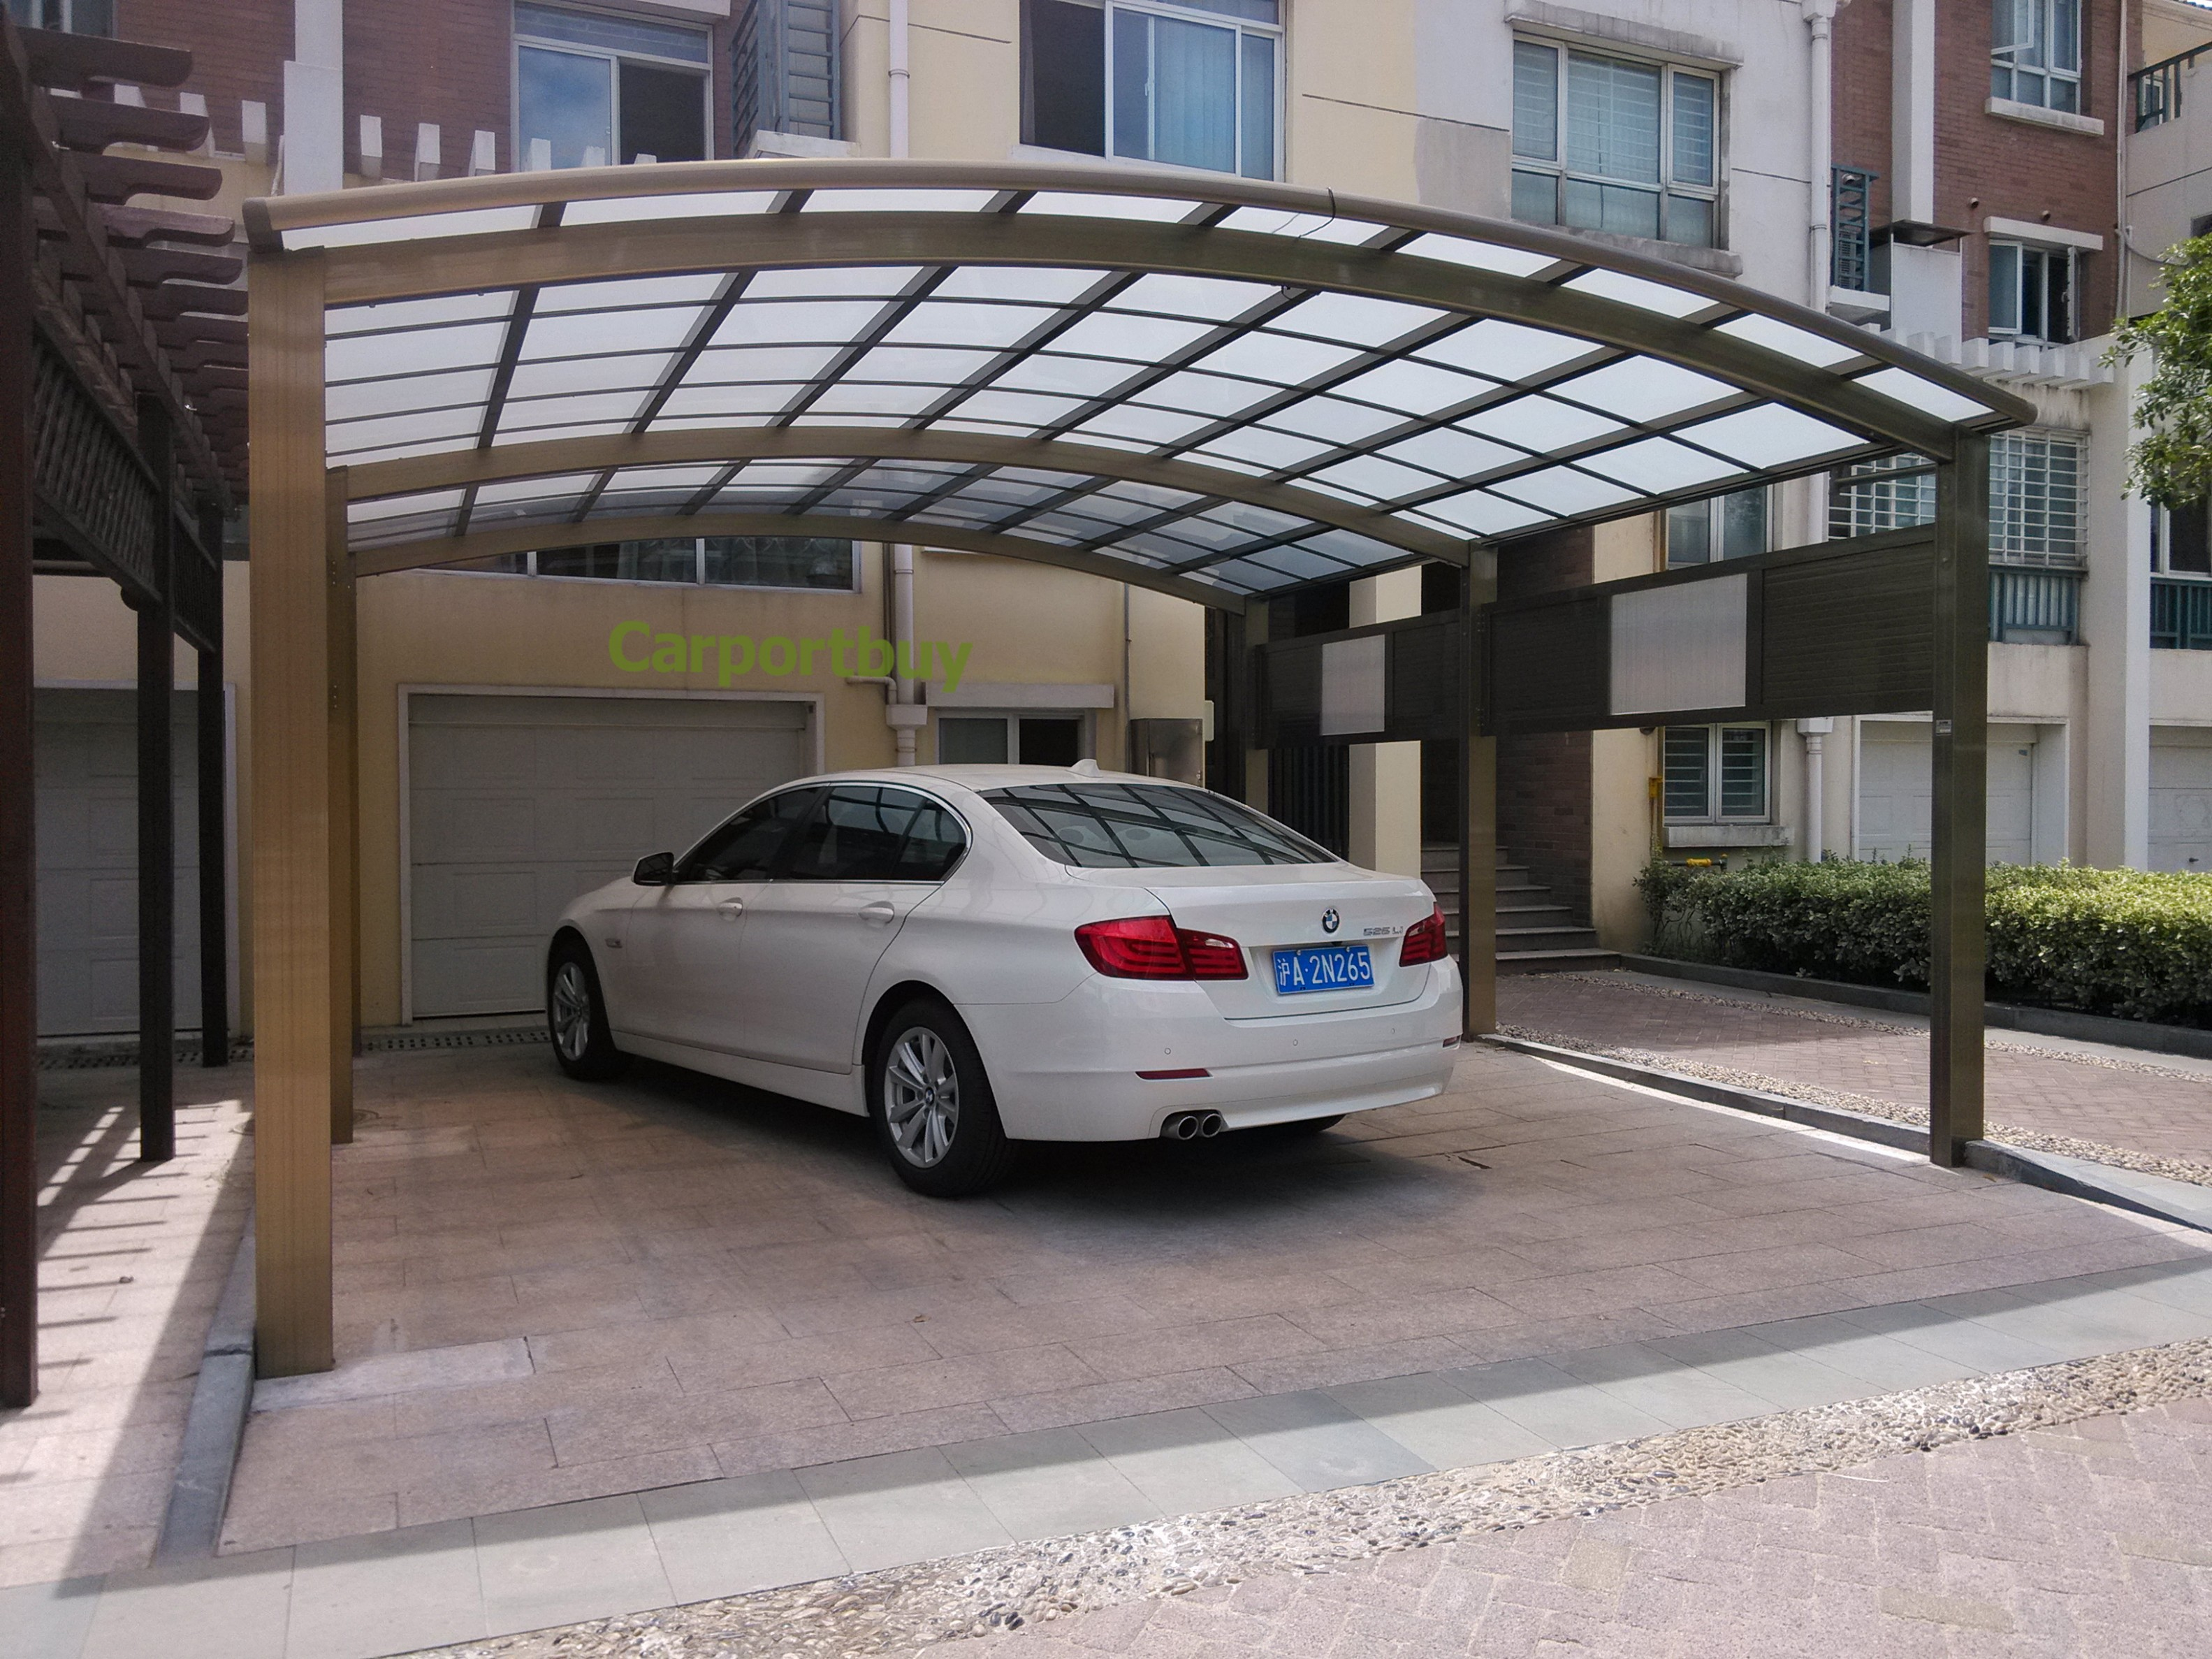 Five Reasons You Should Fall In Love With 11 Car Steel Carport | 11 car steel carport